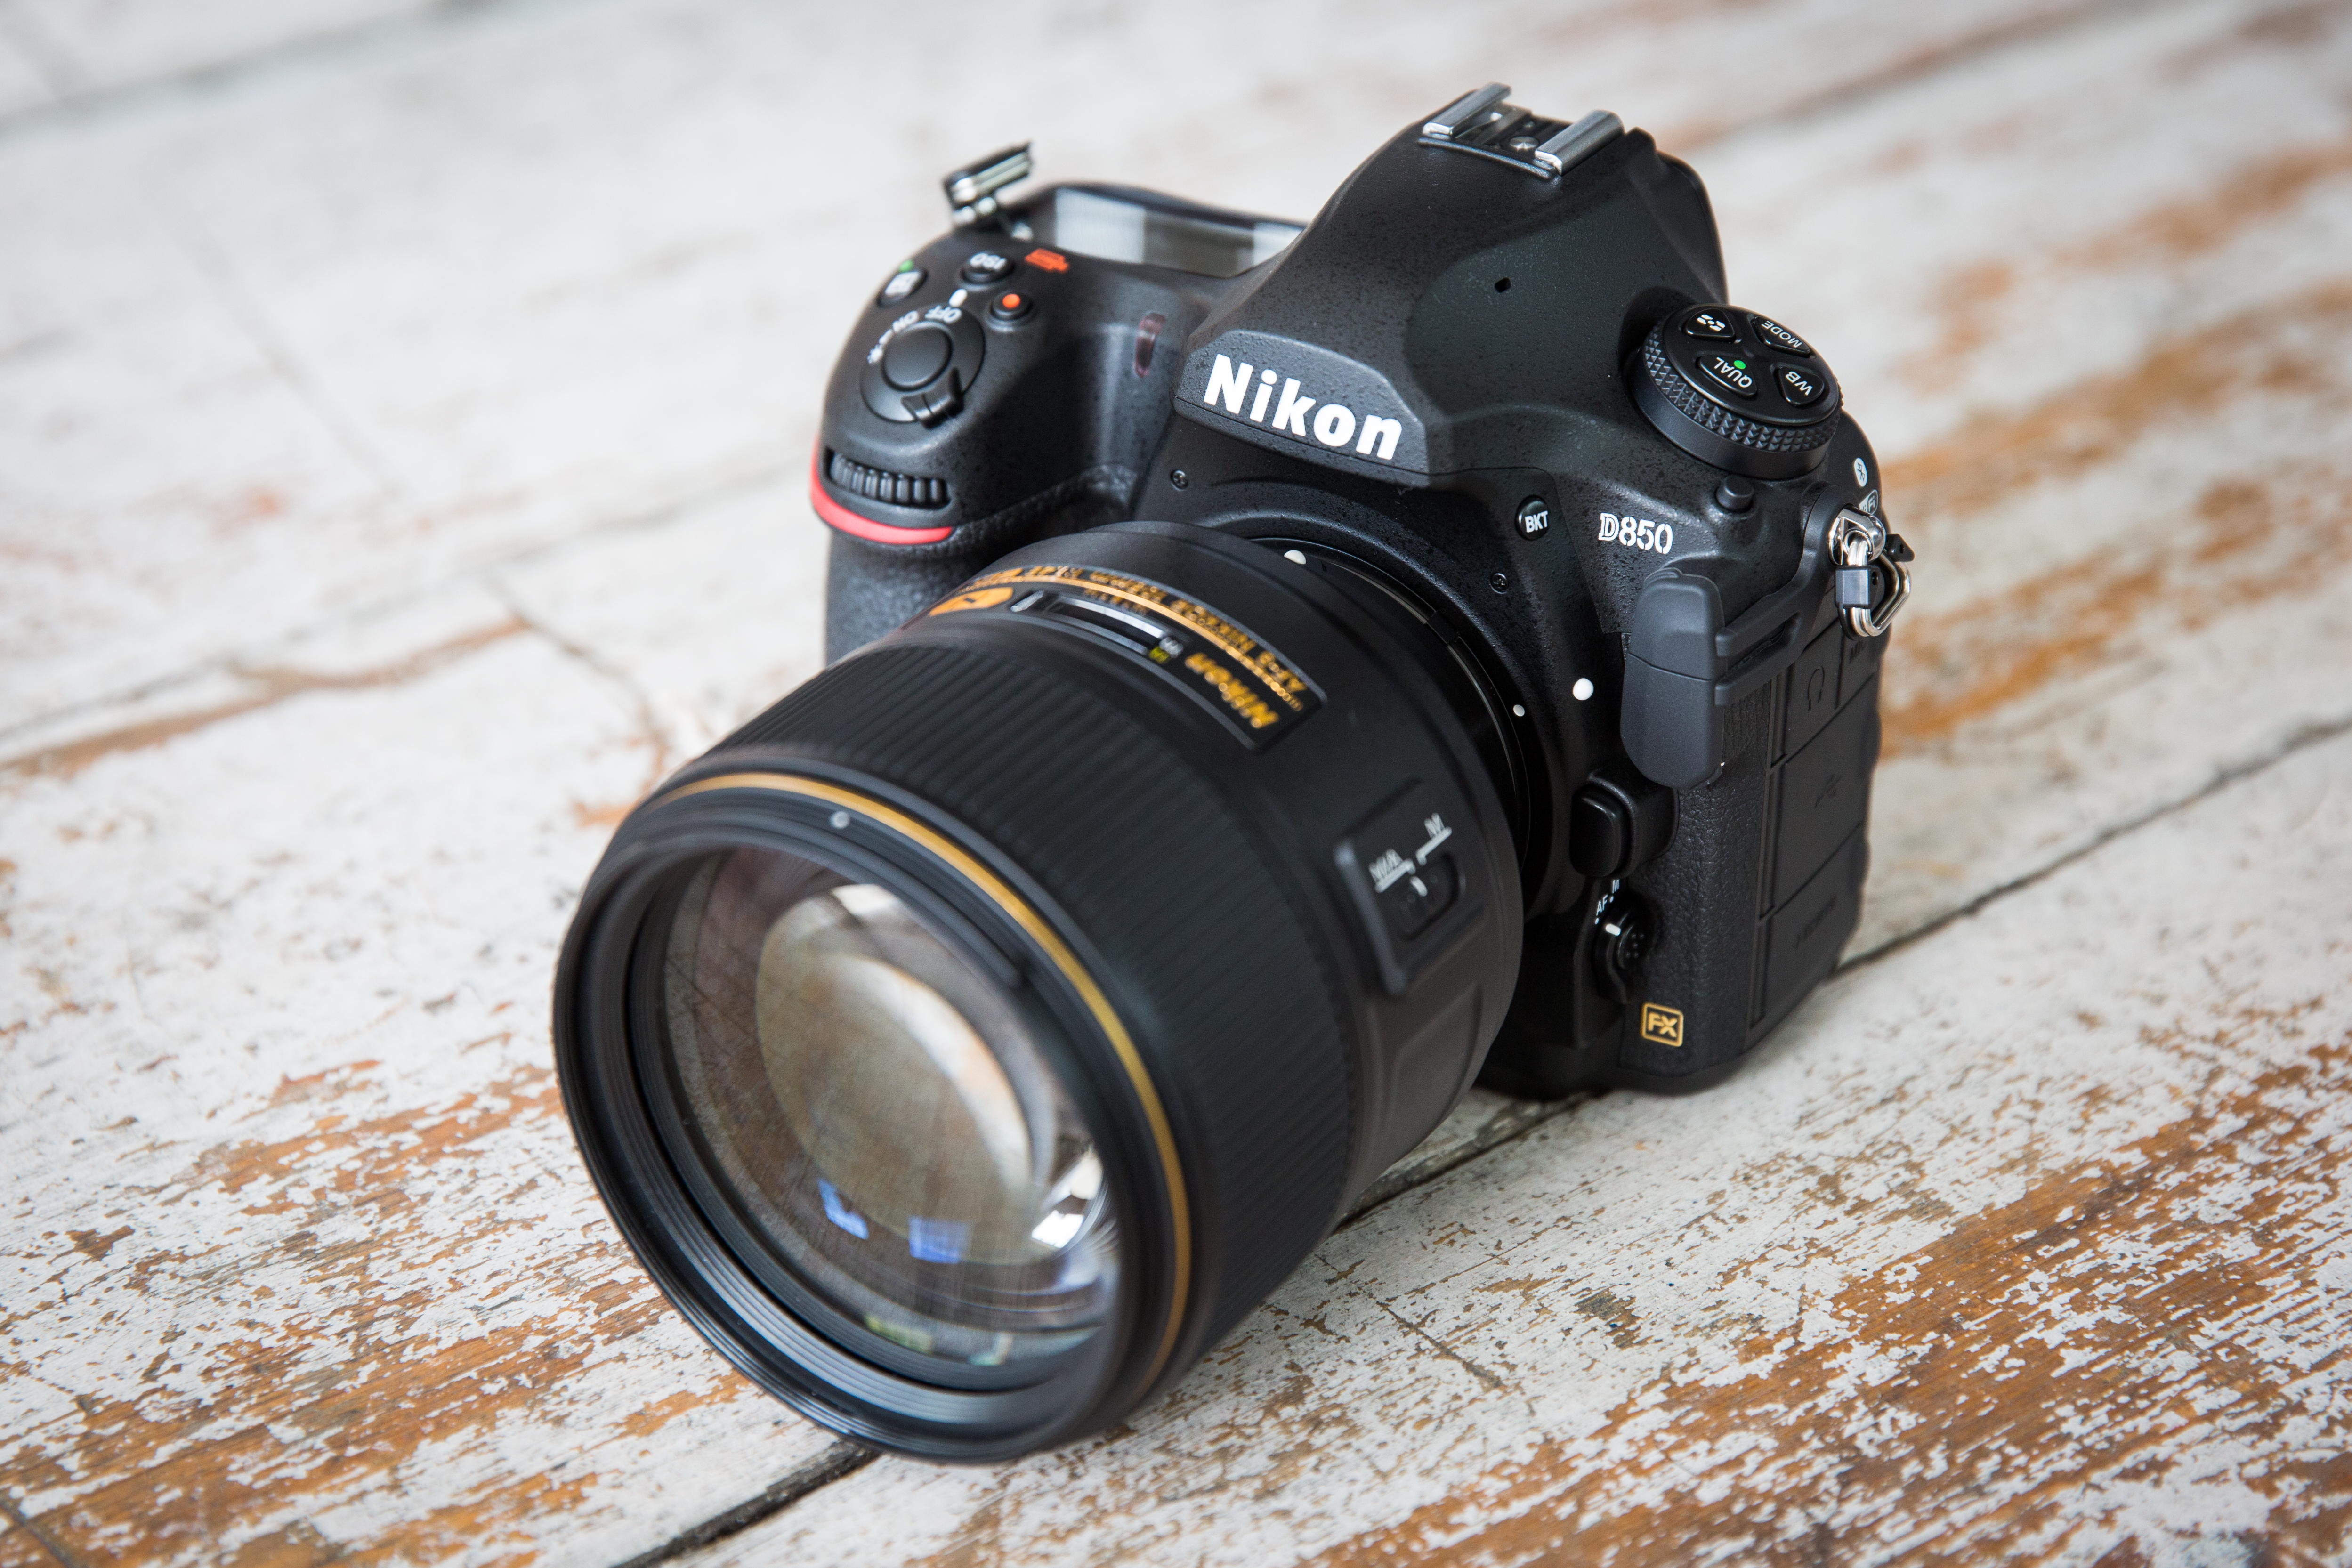 Nikon D850 – hands-on with Nikon's best all-round camera yet